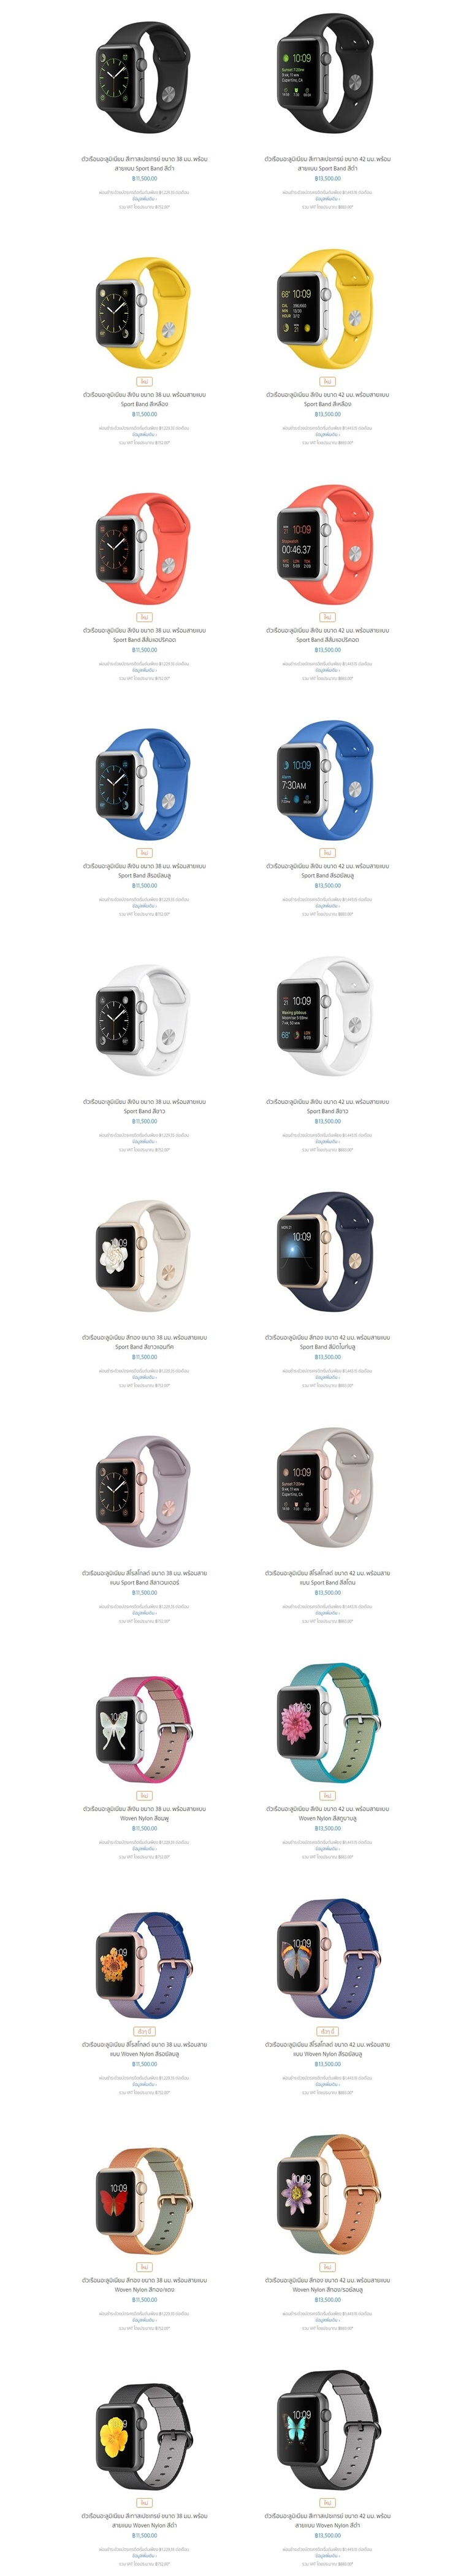 Apple Watch Sport - เลือกซื้อ Apple Watch Sport - Apple (TH)